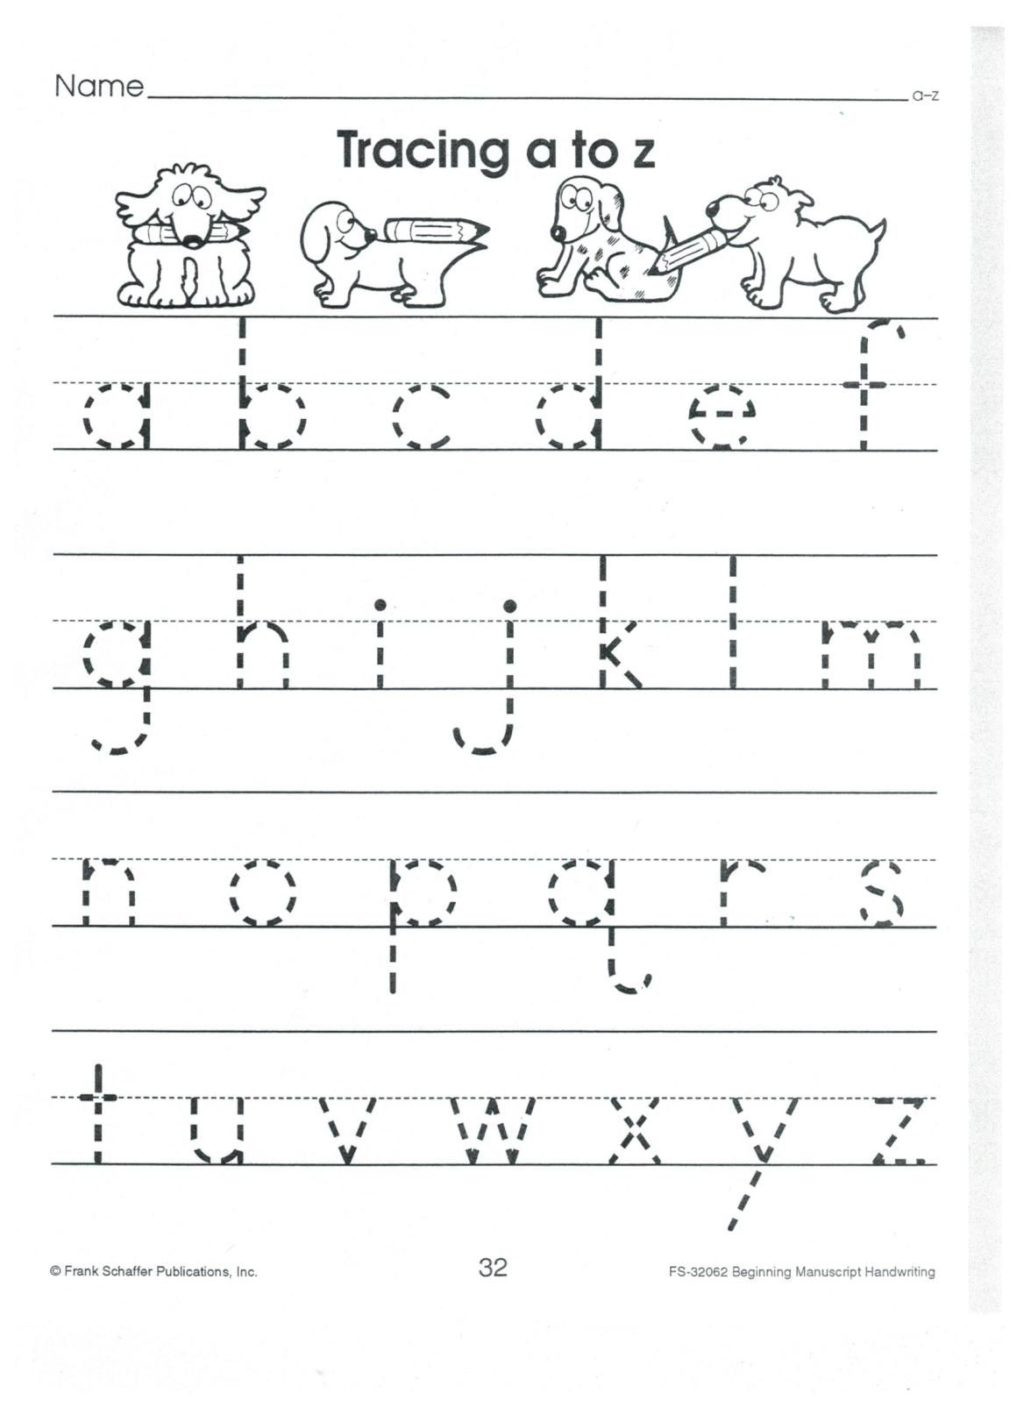 Tracing Lowercase Letters Printable Worksheets Worksheet English Print to Z Lower Case Alphabet Tracing